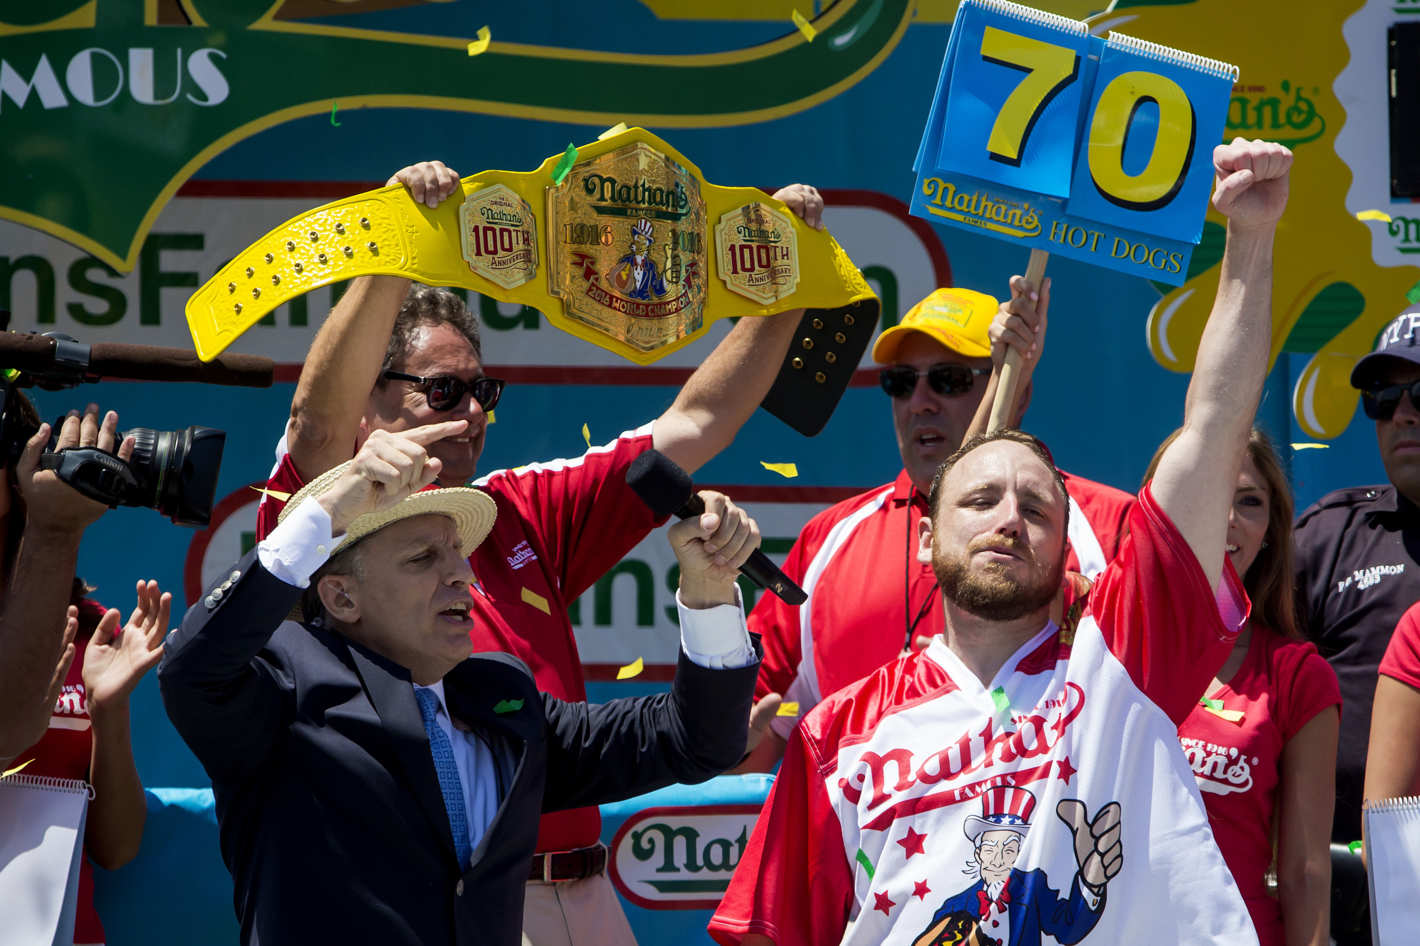 Joey Jaws Chestnut sets a new Nathan's Fourth of July hot dog eating record.  #skeelz (2016)